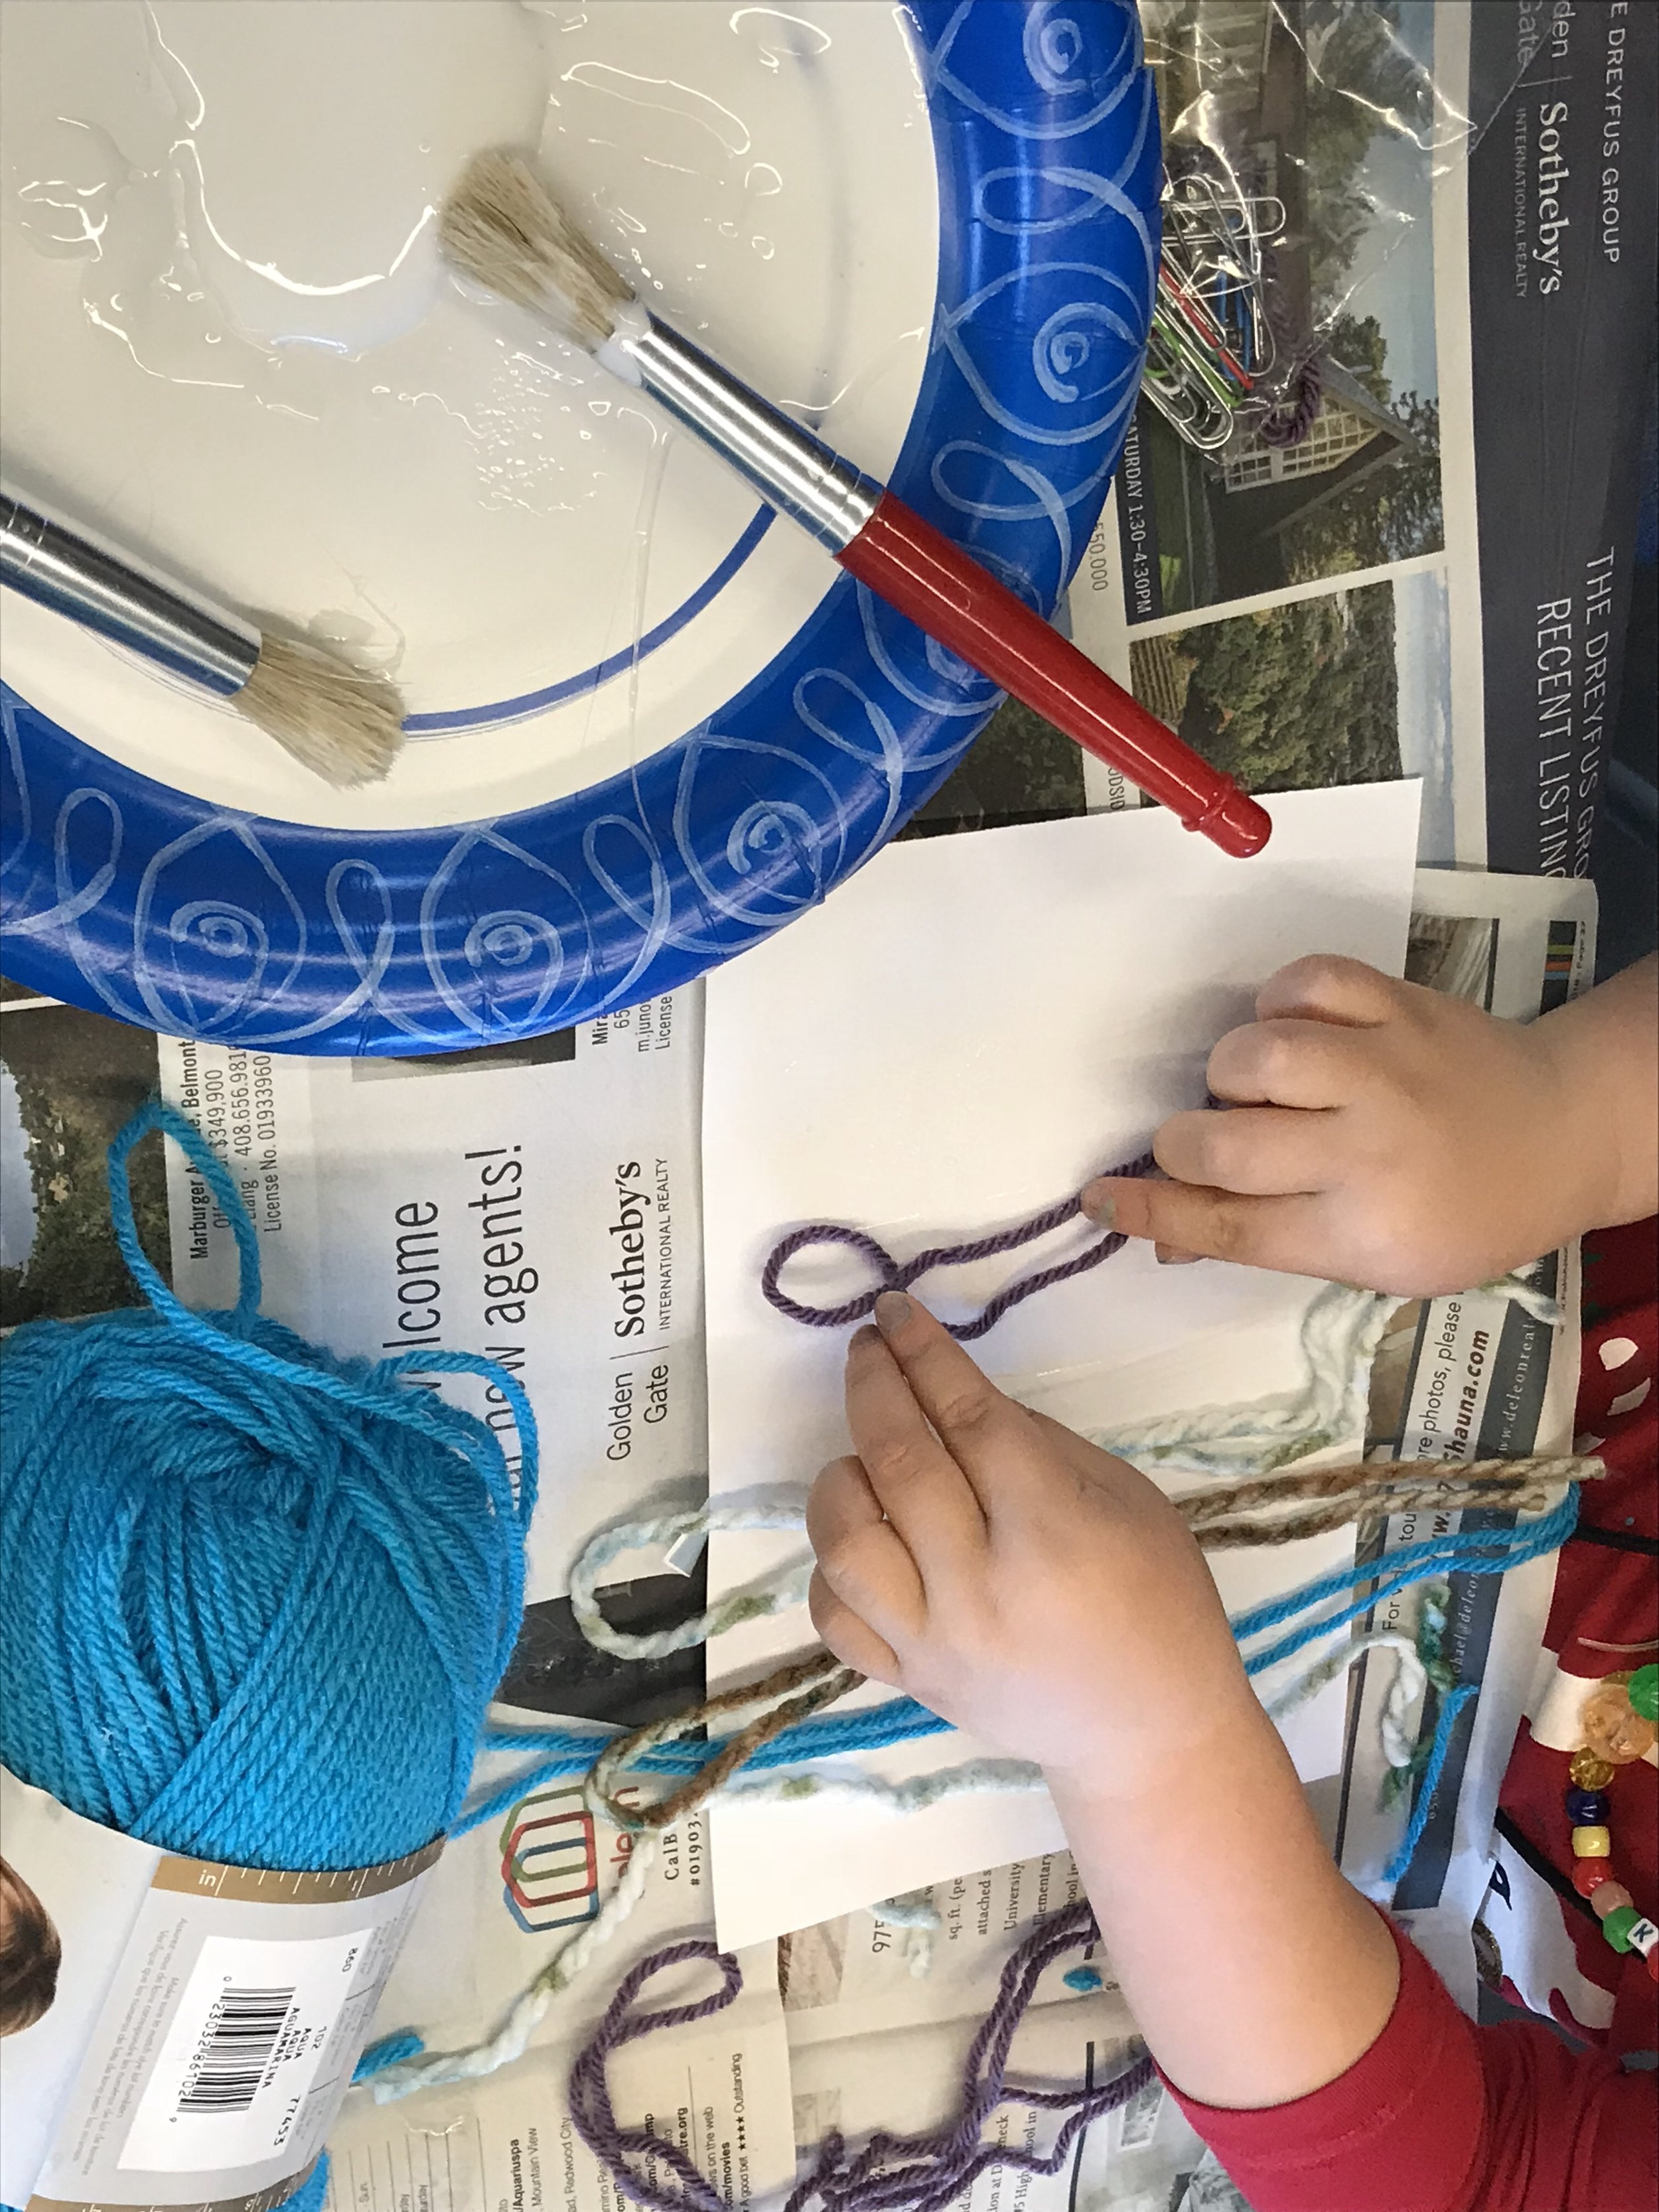 This student was very precise in her yarn placement. Each child approached both the projects differently and had fabulous results.